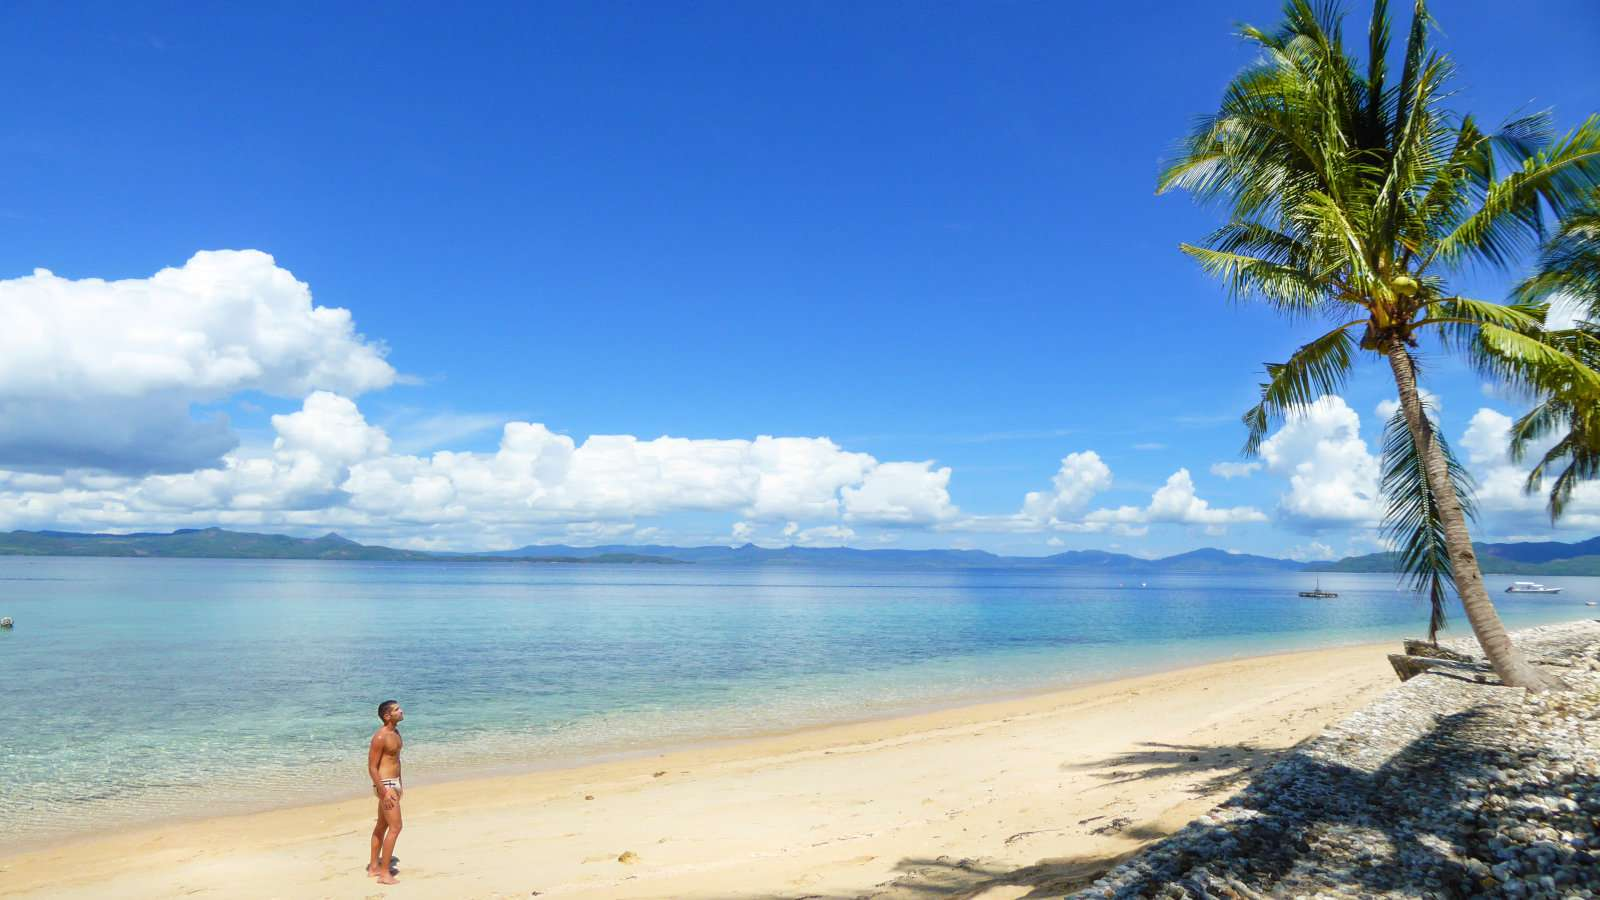 Check out our complete gay travel guide to beautiful Palawan in the Philippines